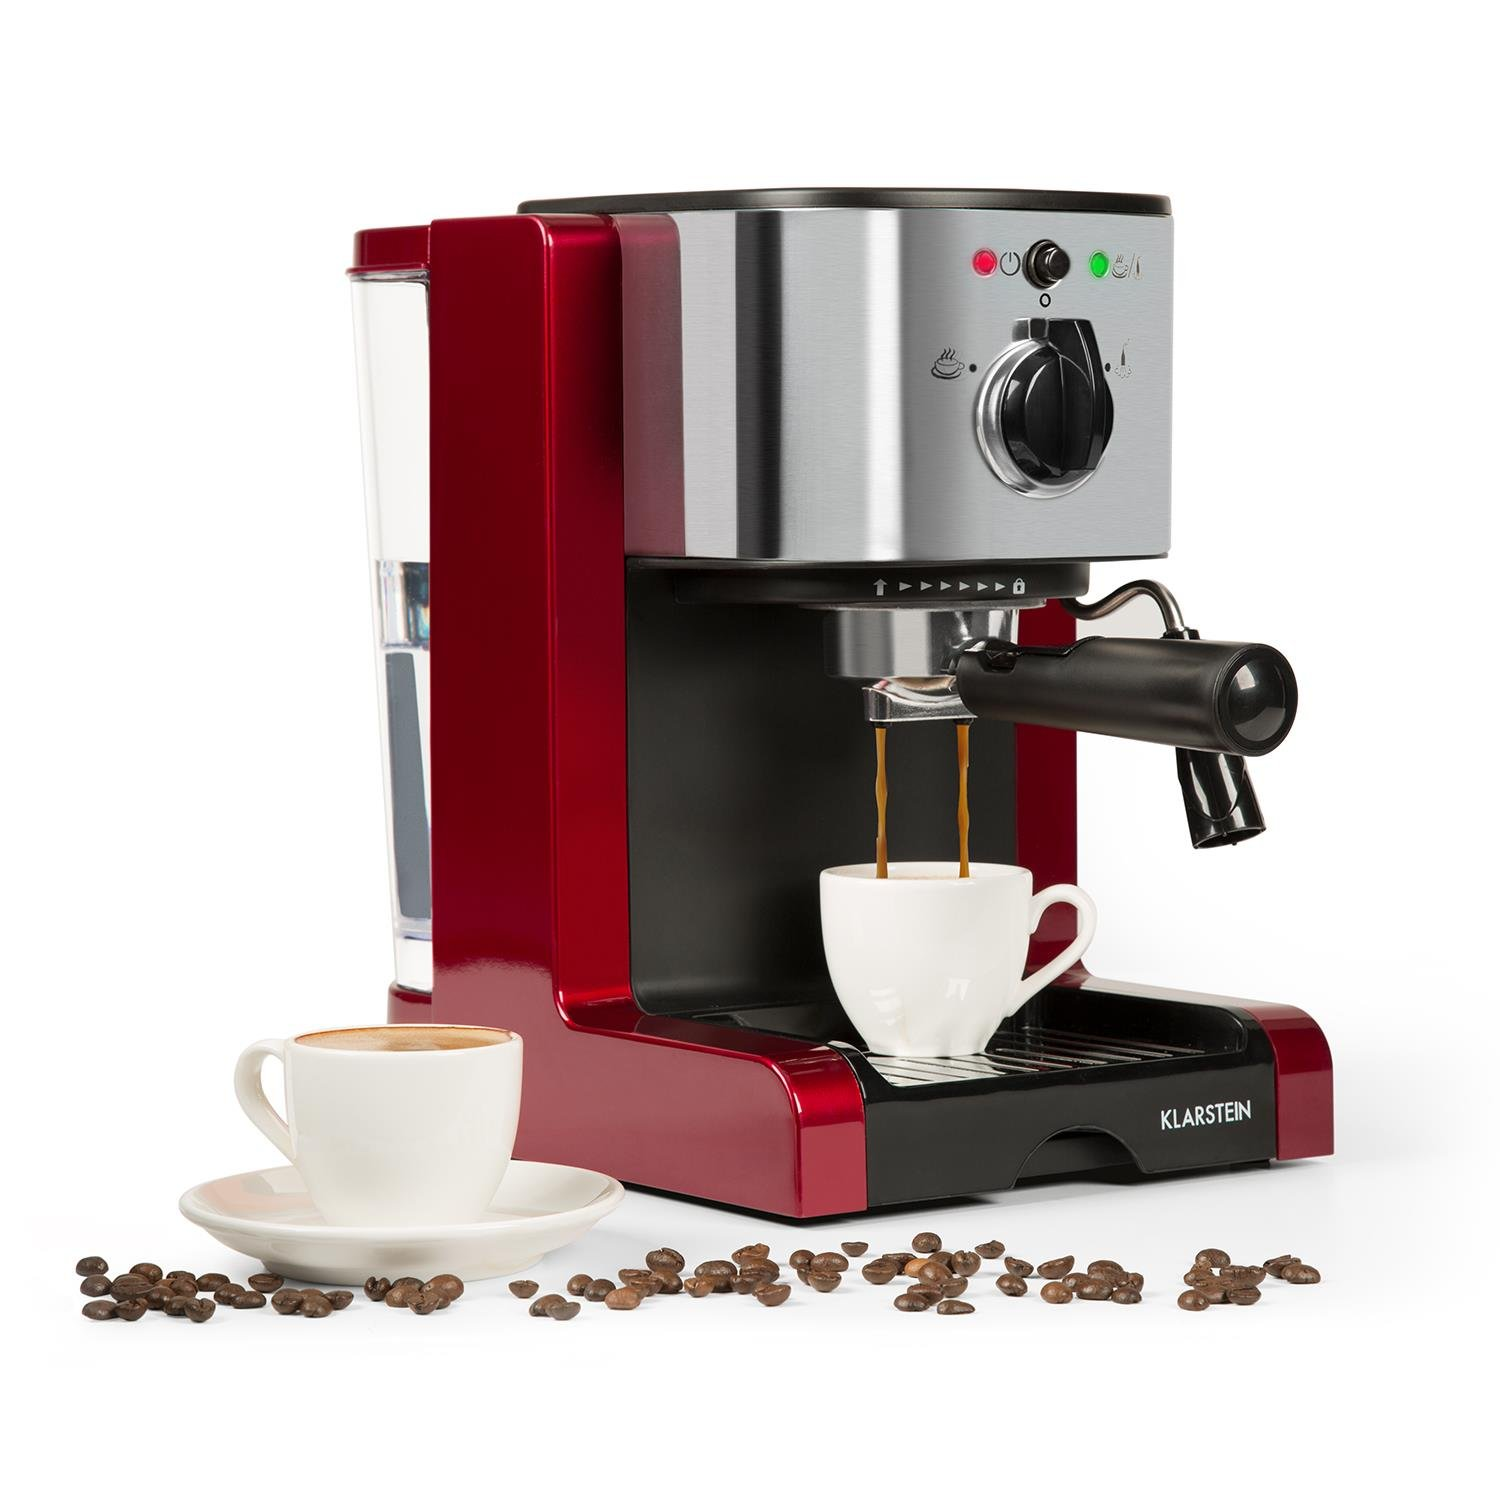 Klarstein Passionata Rossa 15 Espresso Machine • 15 Bar • Capuccino • Milk Foam • 1350W • Stylish Design for Modern Kitchens • Steam Nozzle for Frothing Milk and Preparing Hot Drinks • Red